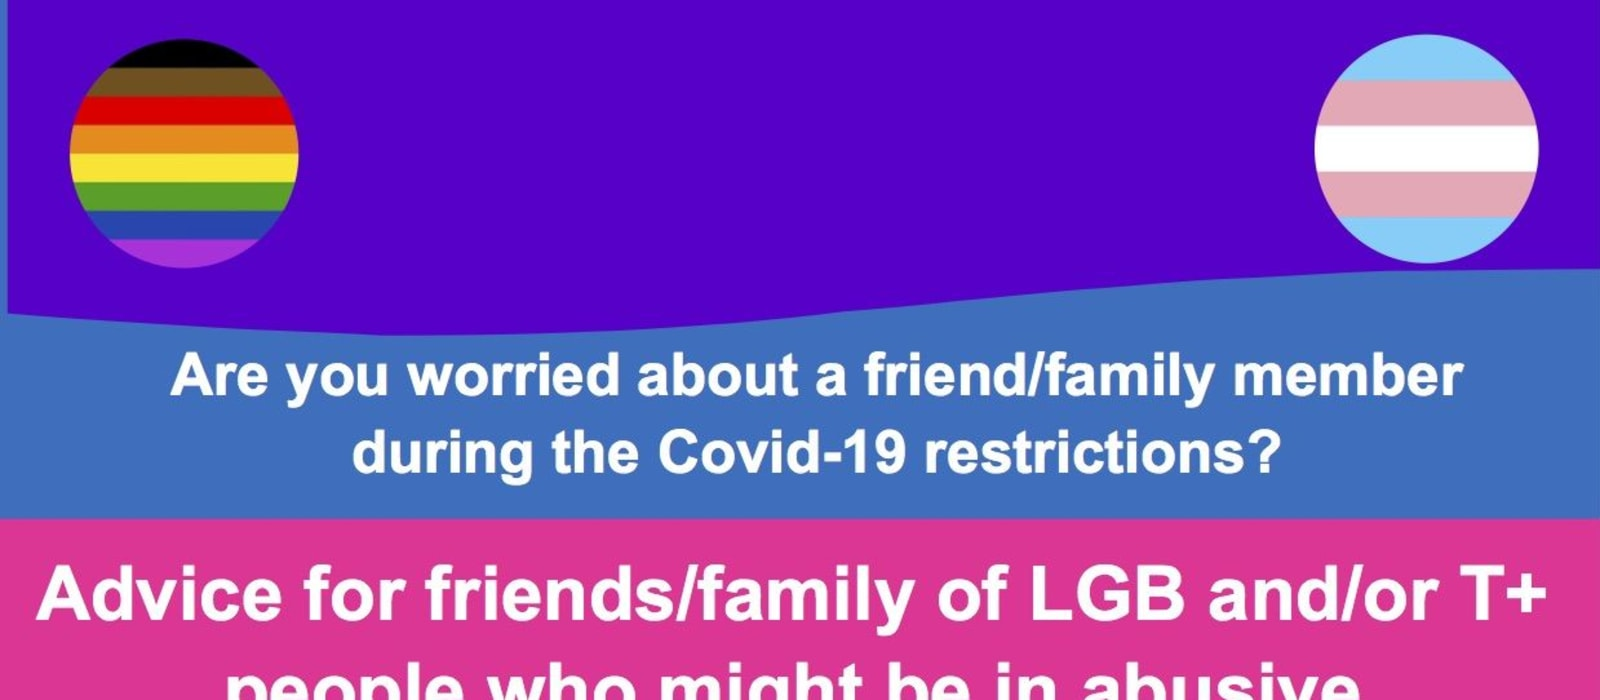 Guidance for people worried about LGBTQ+ friends/family during Covid-19